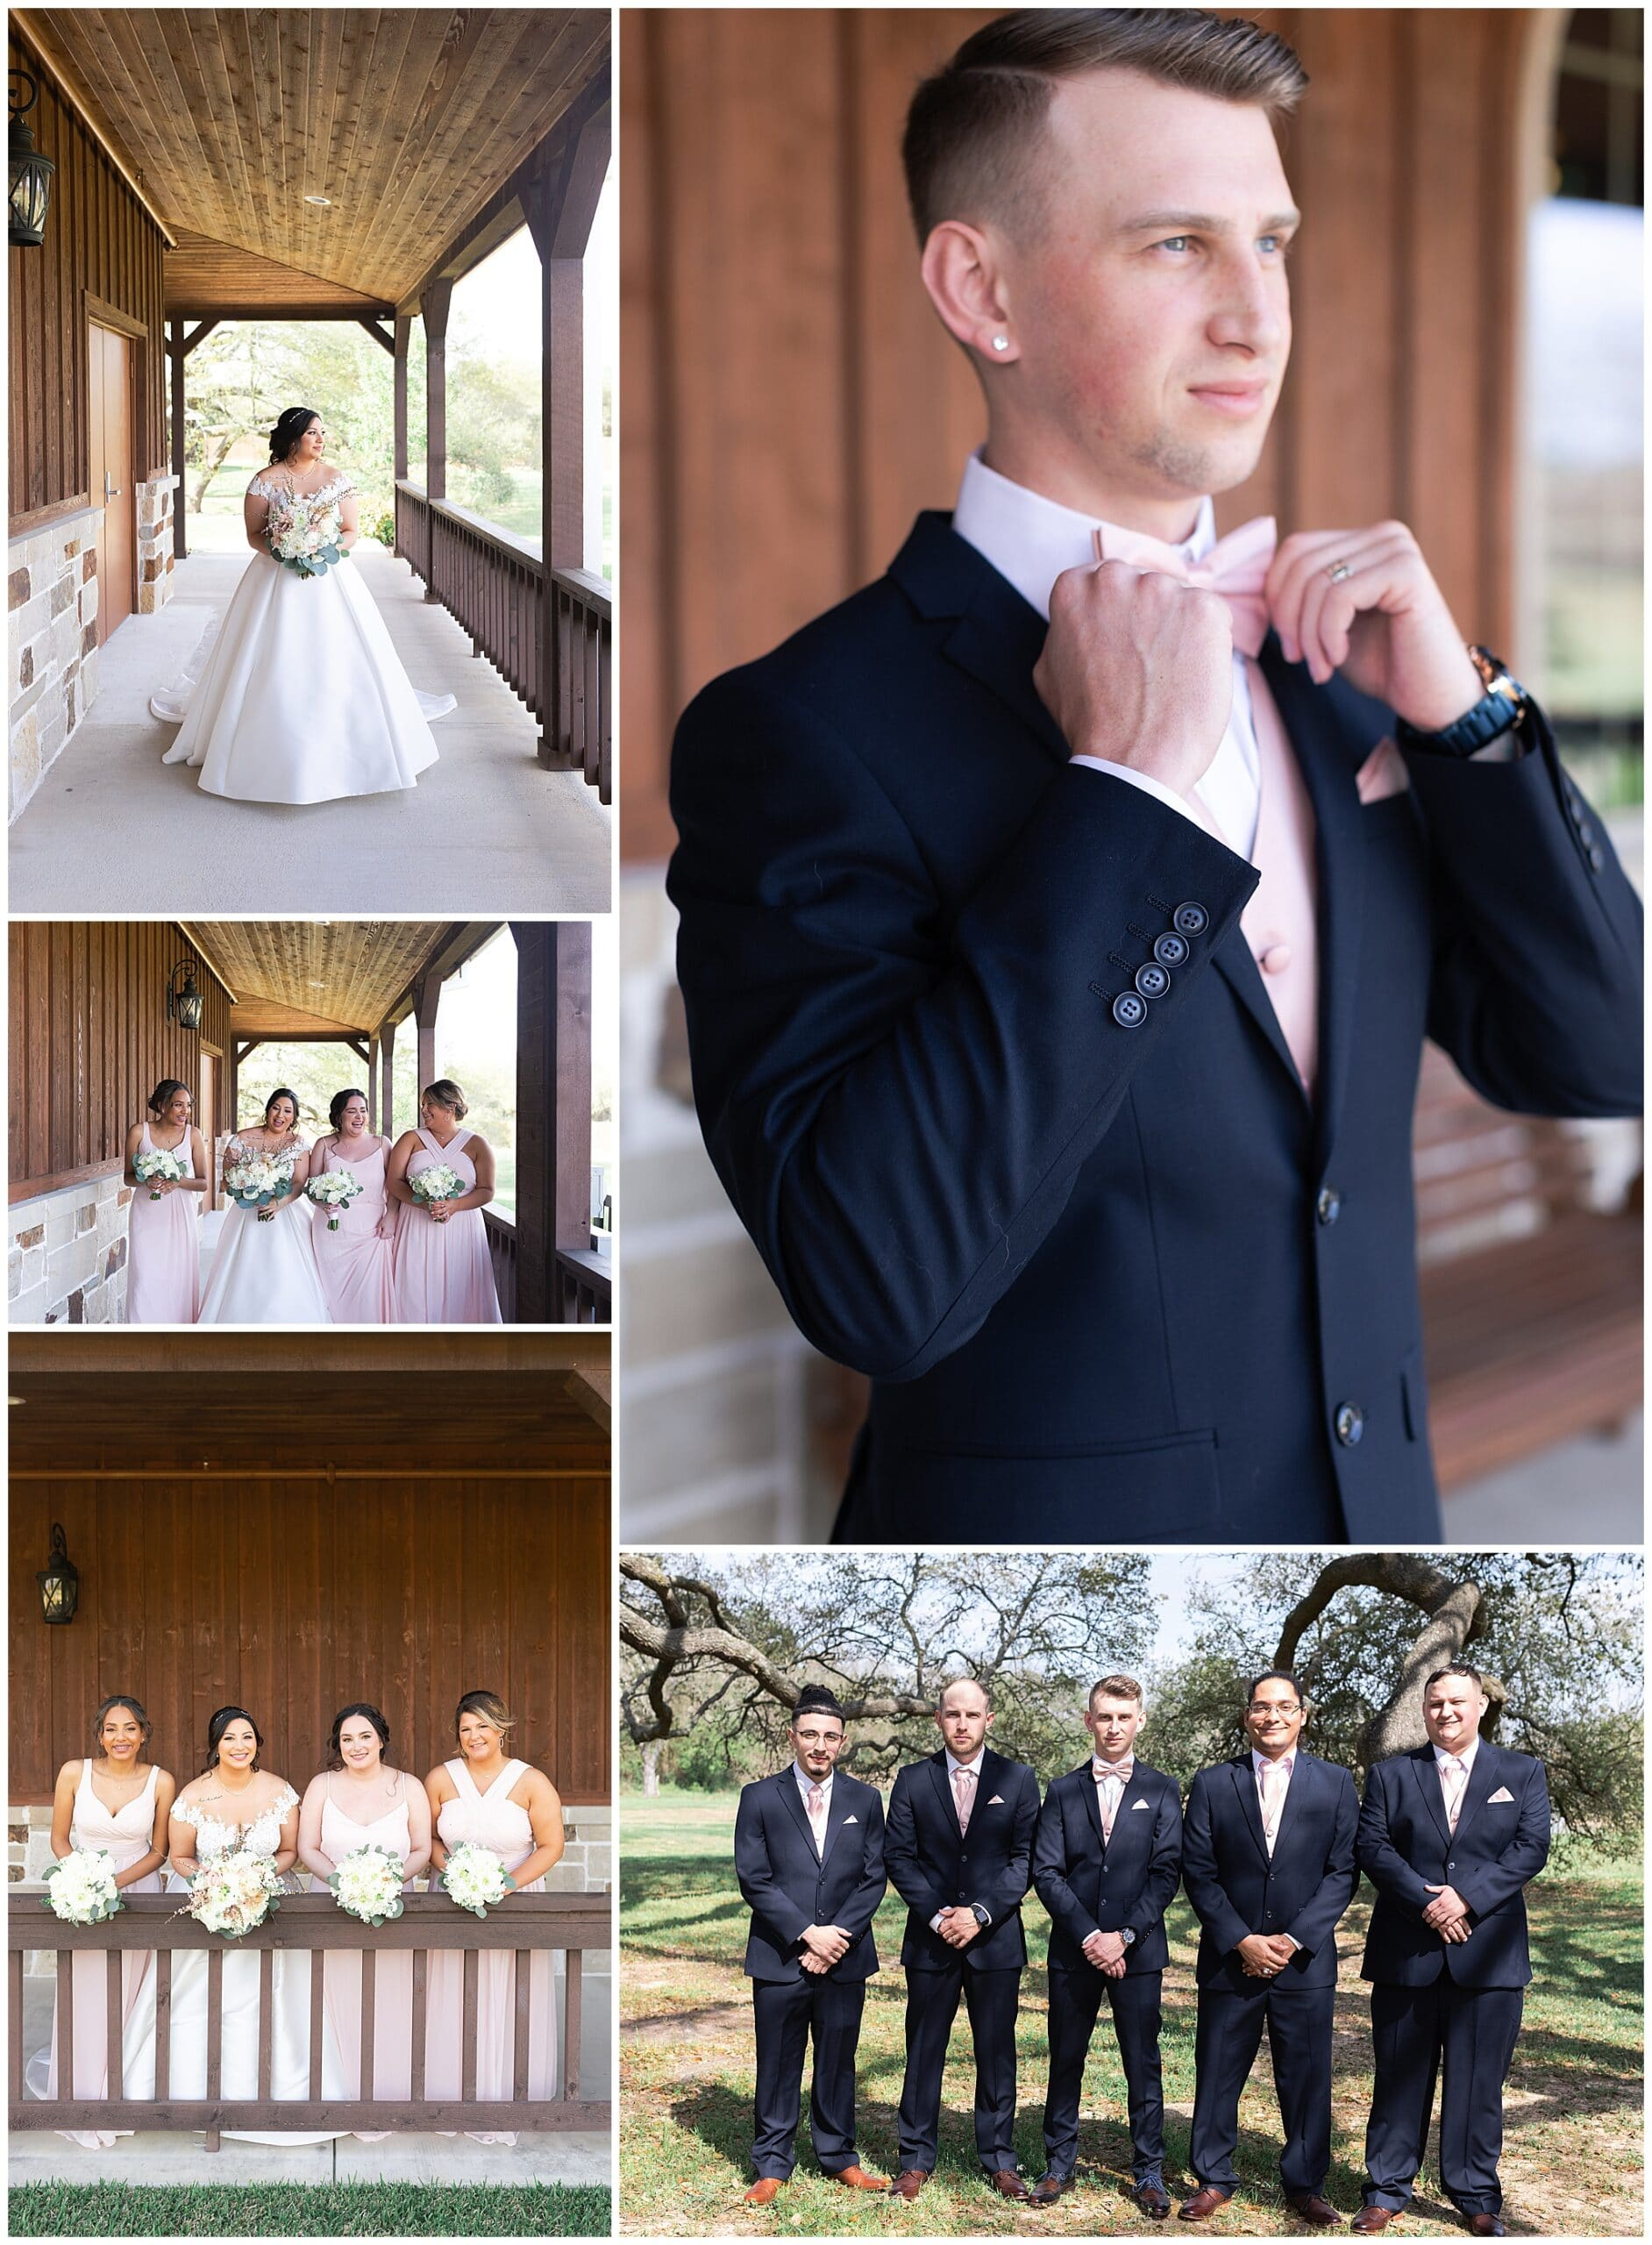 groom party and bridal party at Bridal Oaks in Cypress Texas by Houston wedding photographer Swish and Click Photography